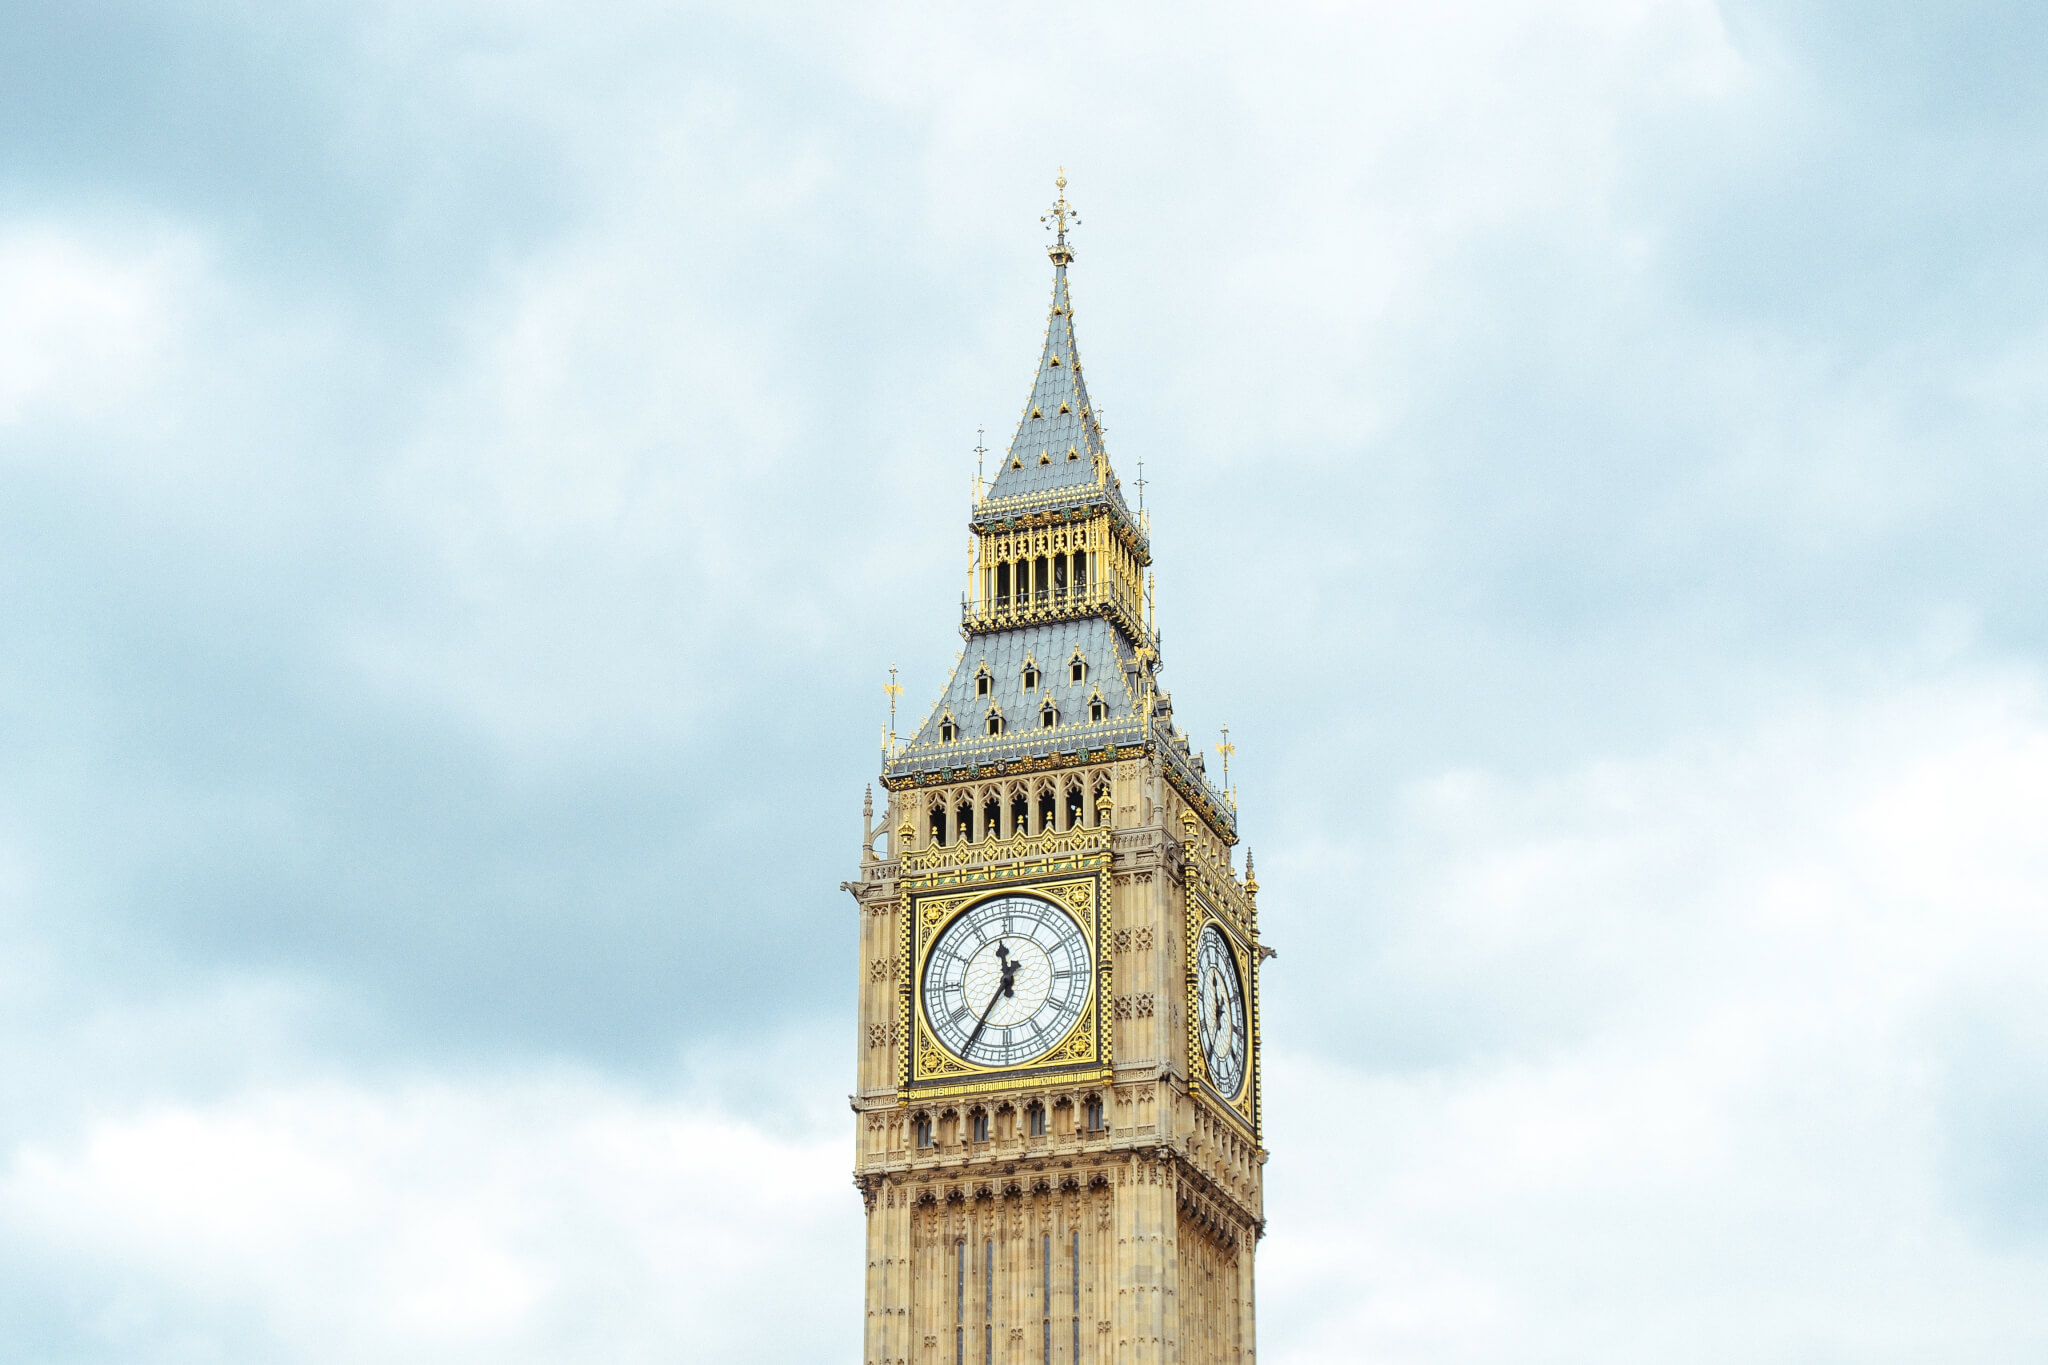 Big Ben - Parliament UK on a clear blue sky